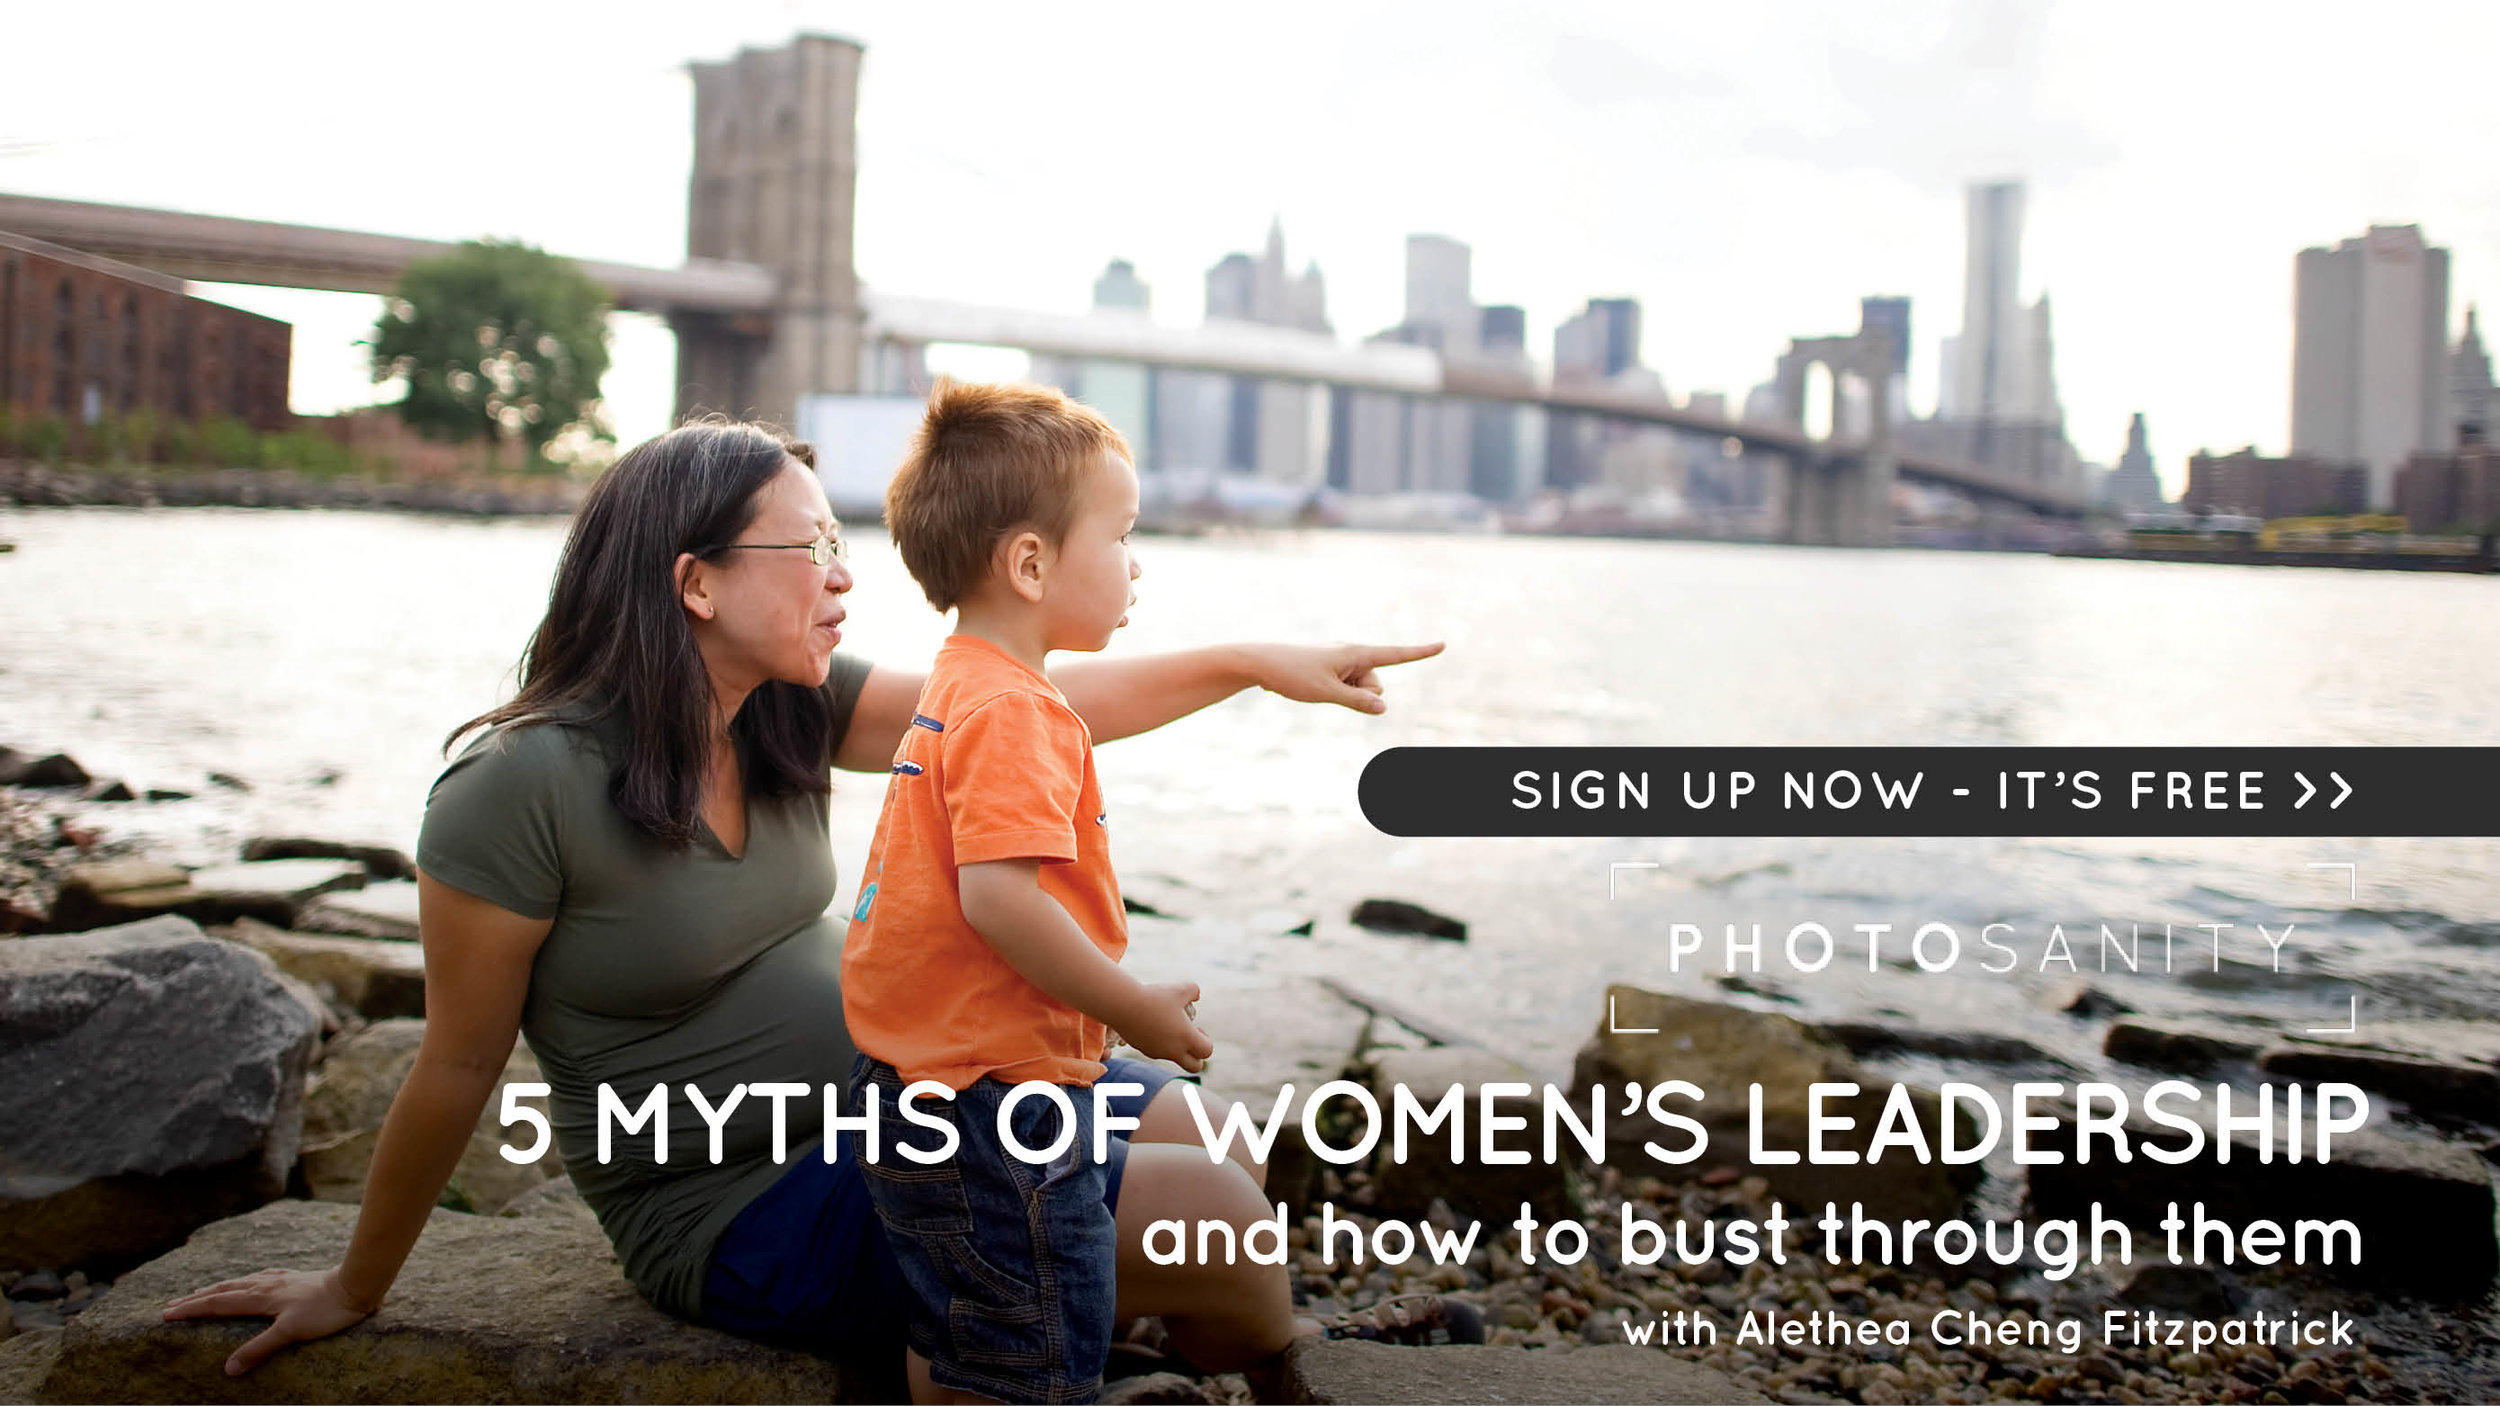 5myths_signup.jpg